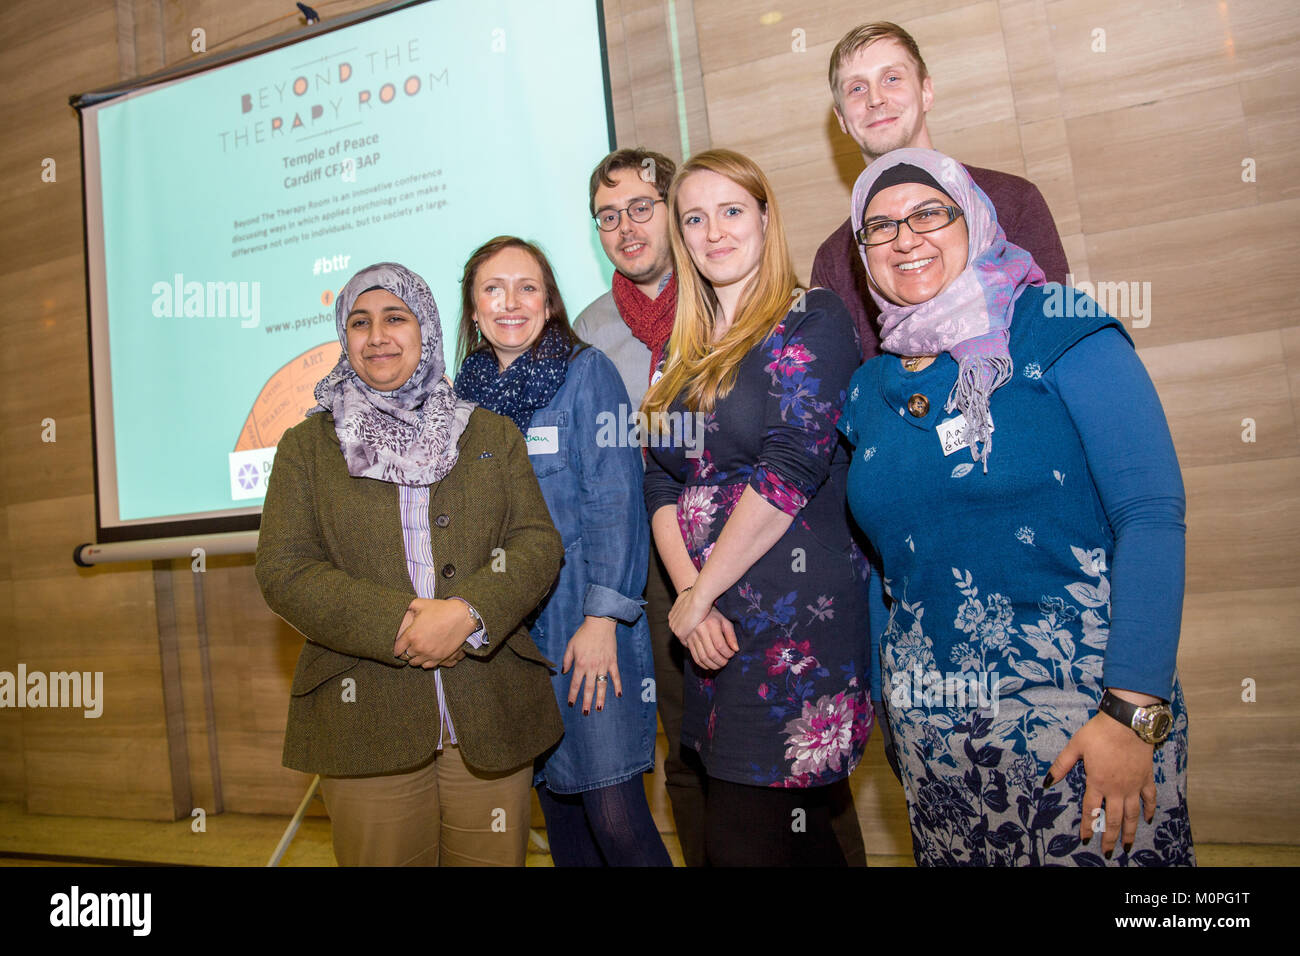 CARDIFF, UNITED KINGDOM.  19 January 2018.  Organisers of the Beyond the Thearapy Room pose for a group portrait. Stock Photo